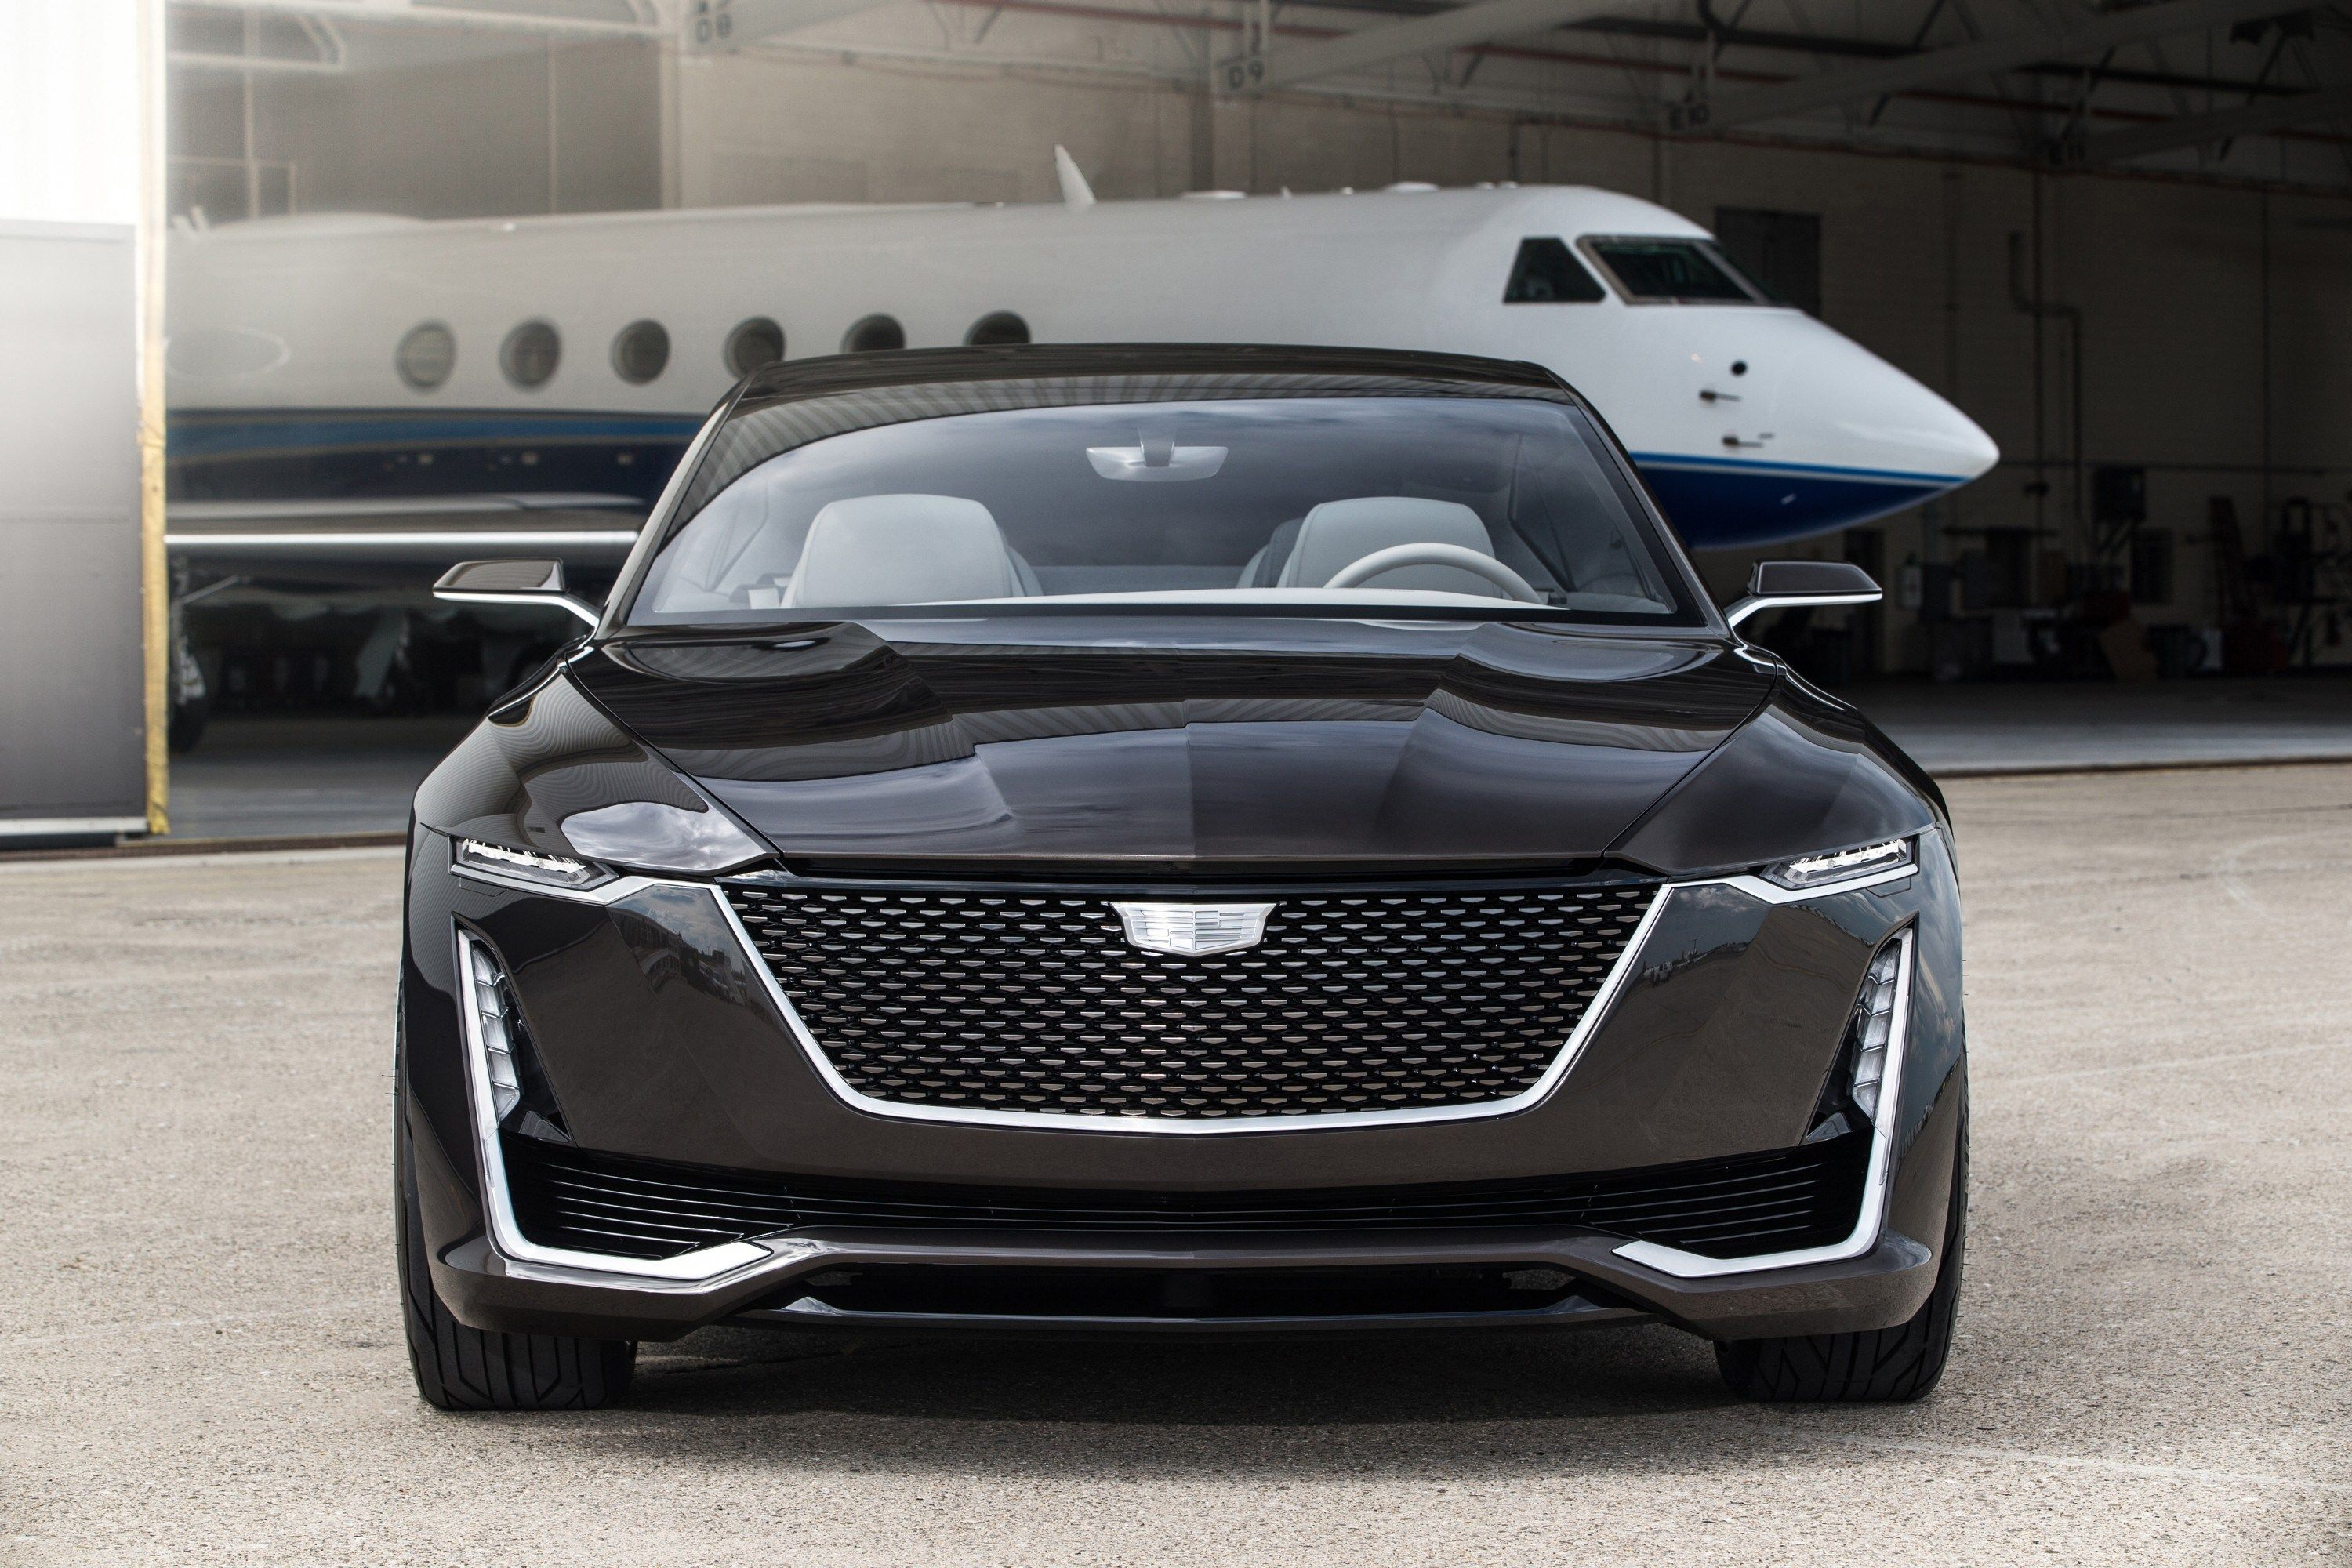 91 The 2020 Cadillac Cts V Horsepower Performance for 2020 Cadillac Cts V Horsepower